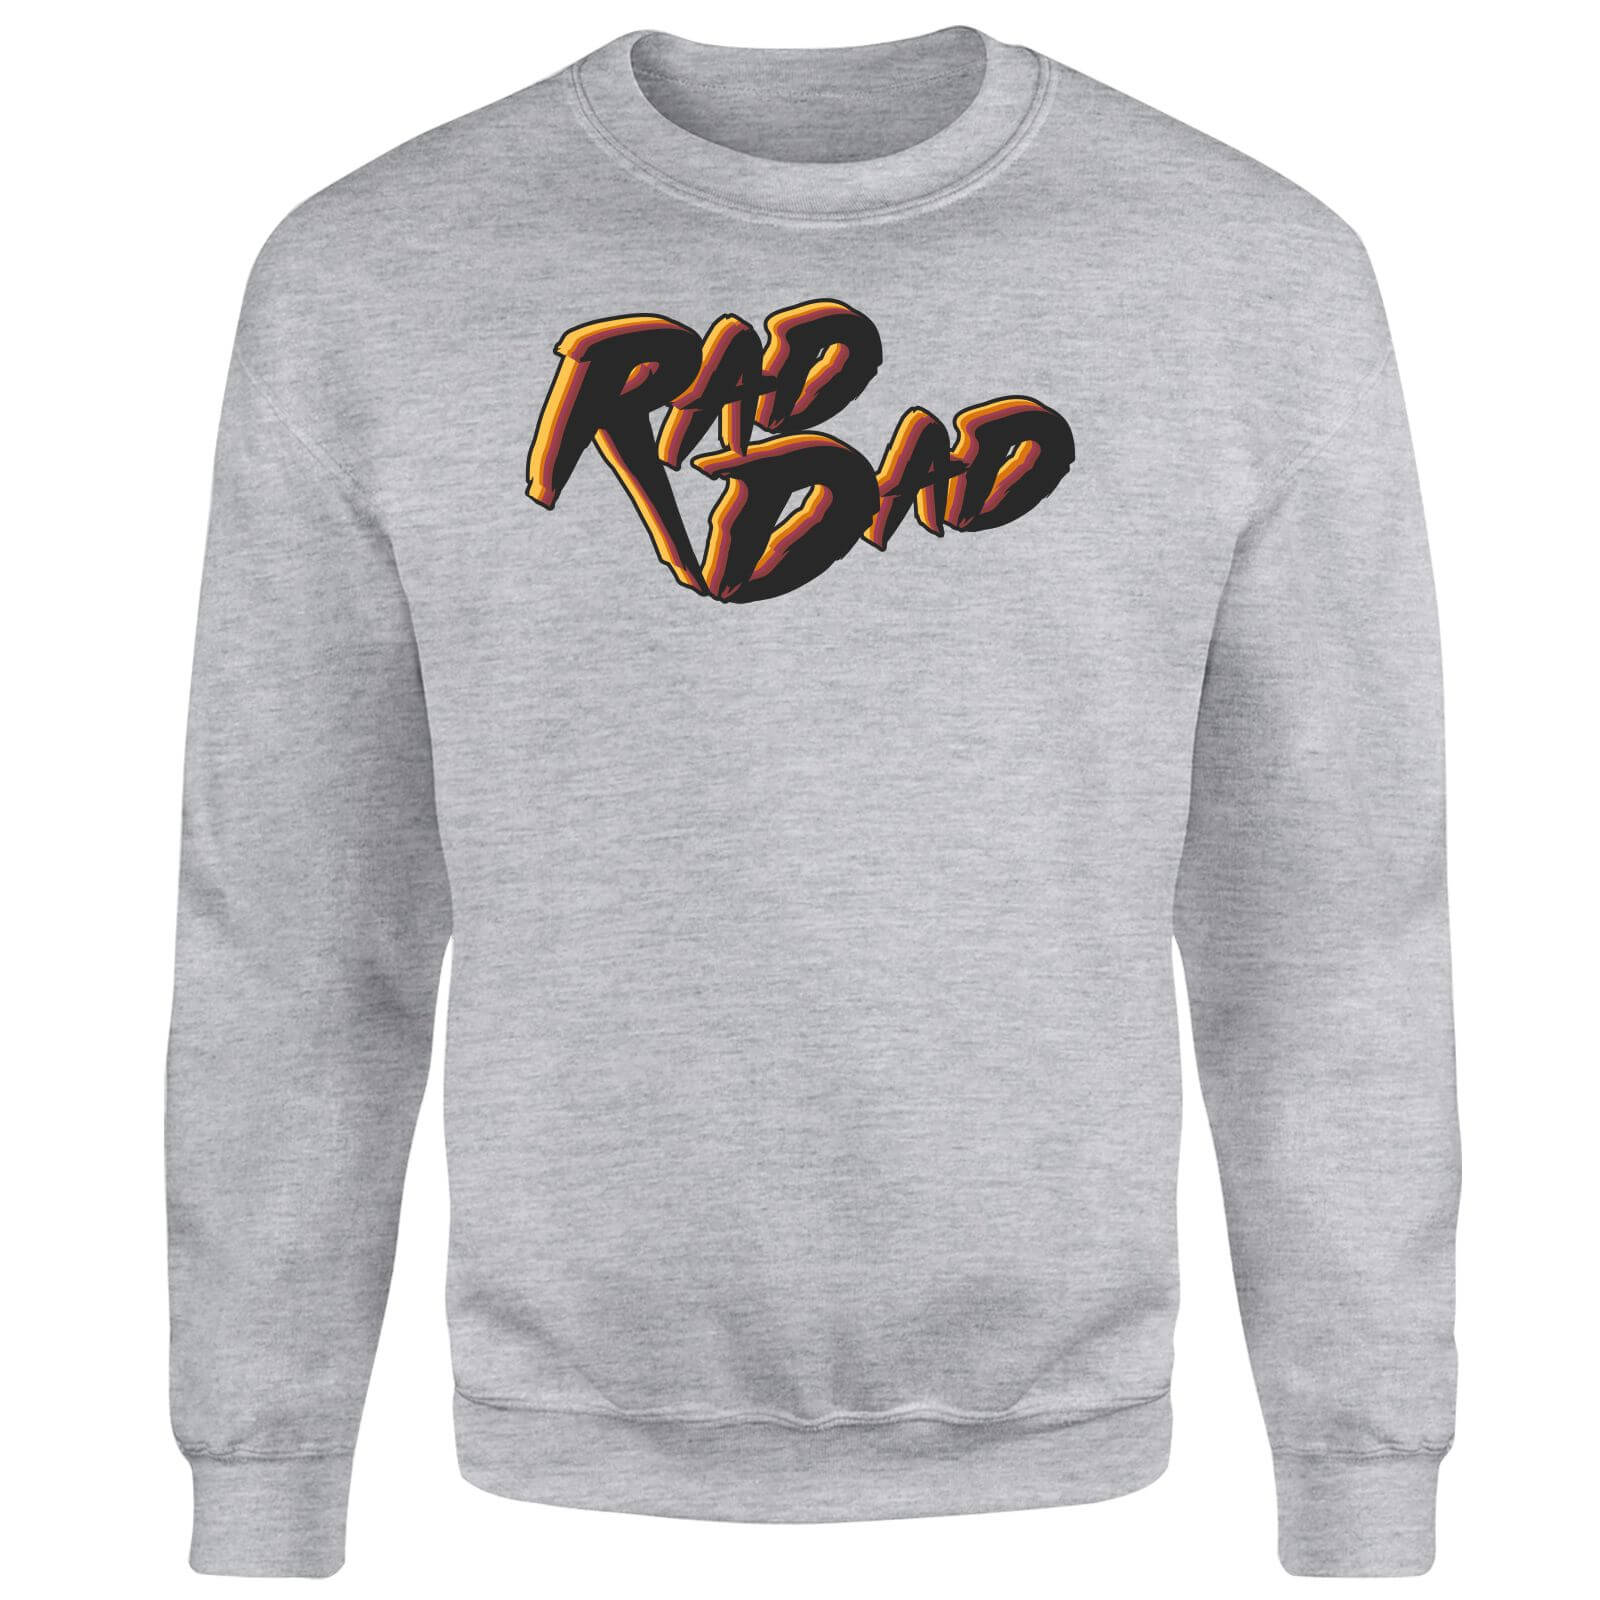 Rad Dad Sweatshirt - Grey